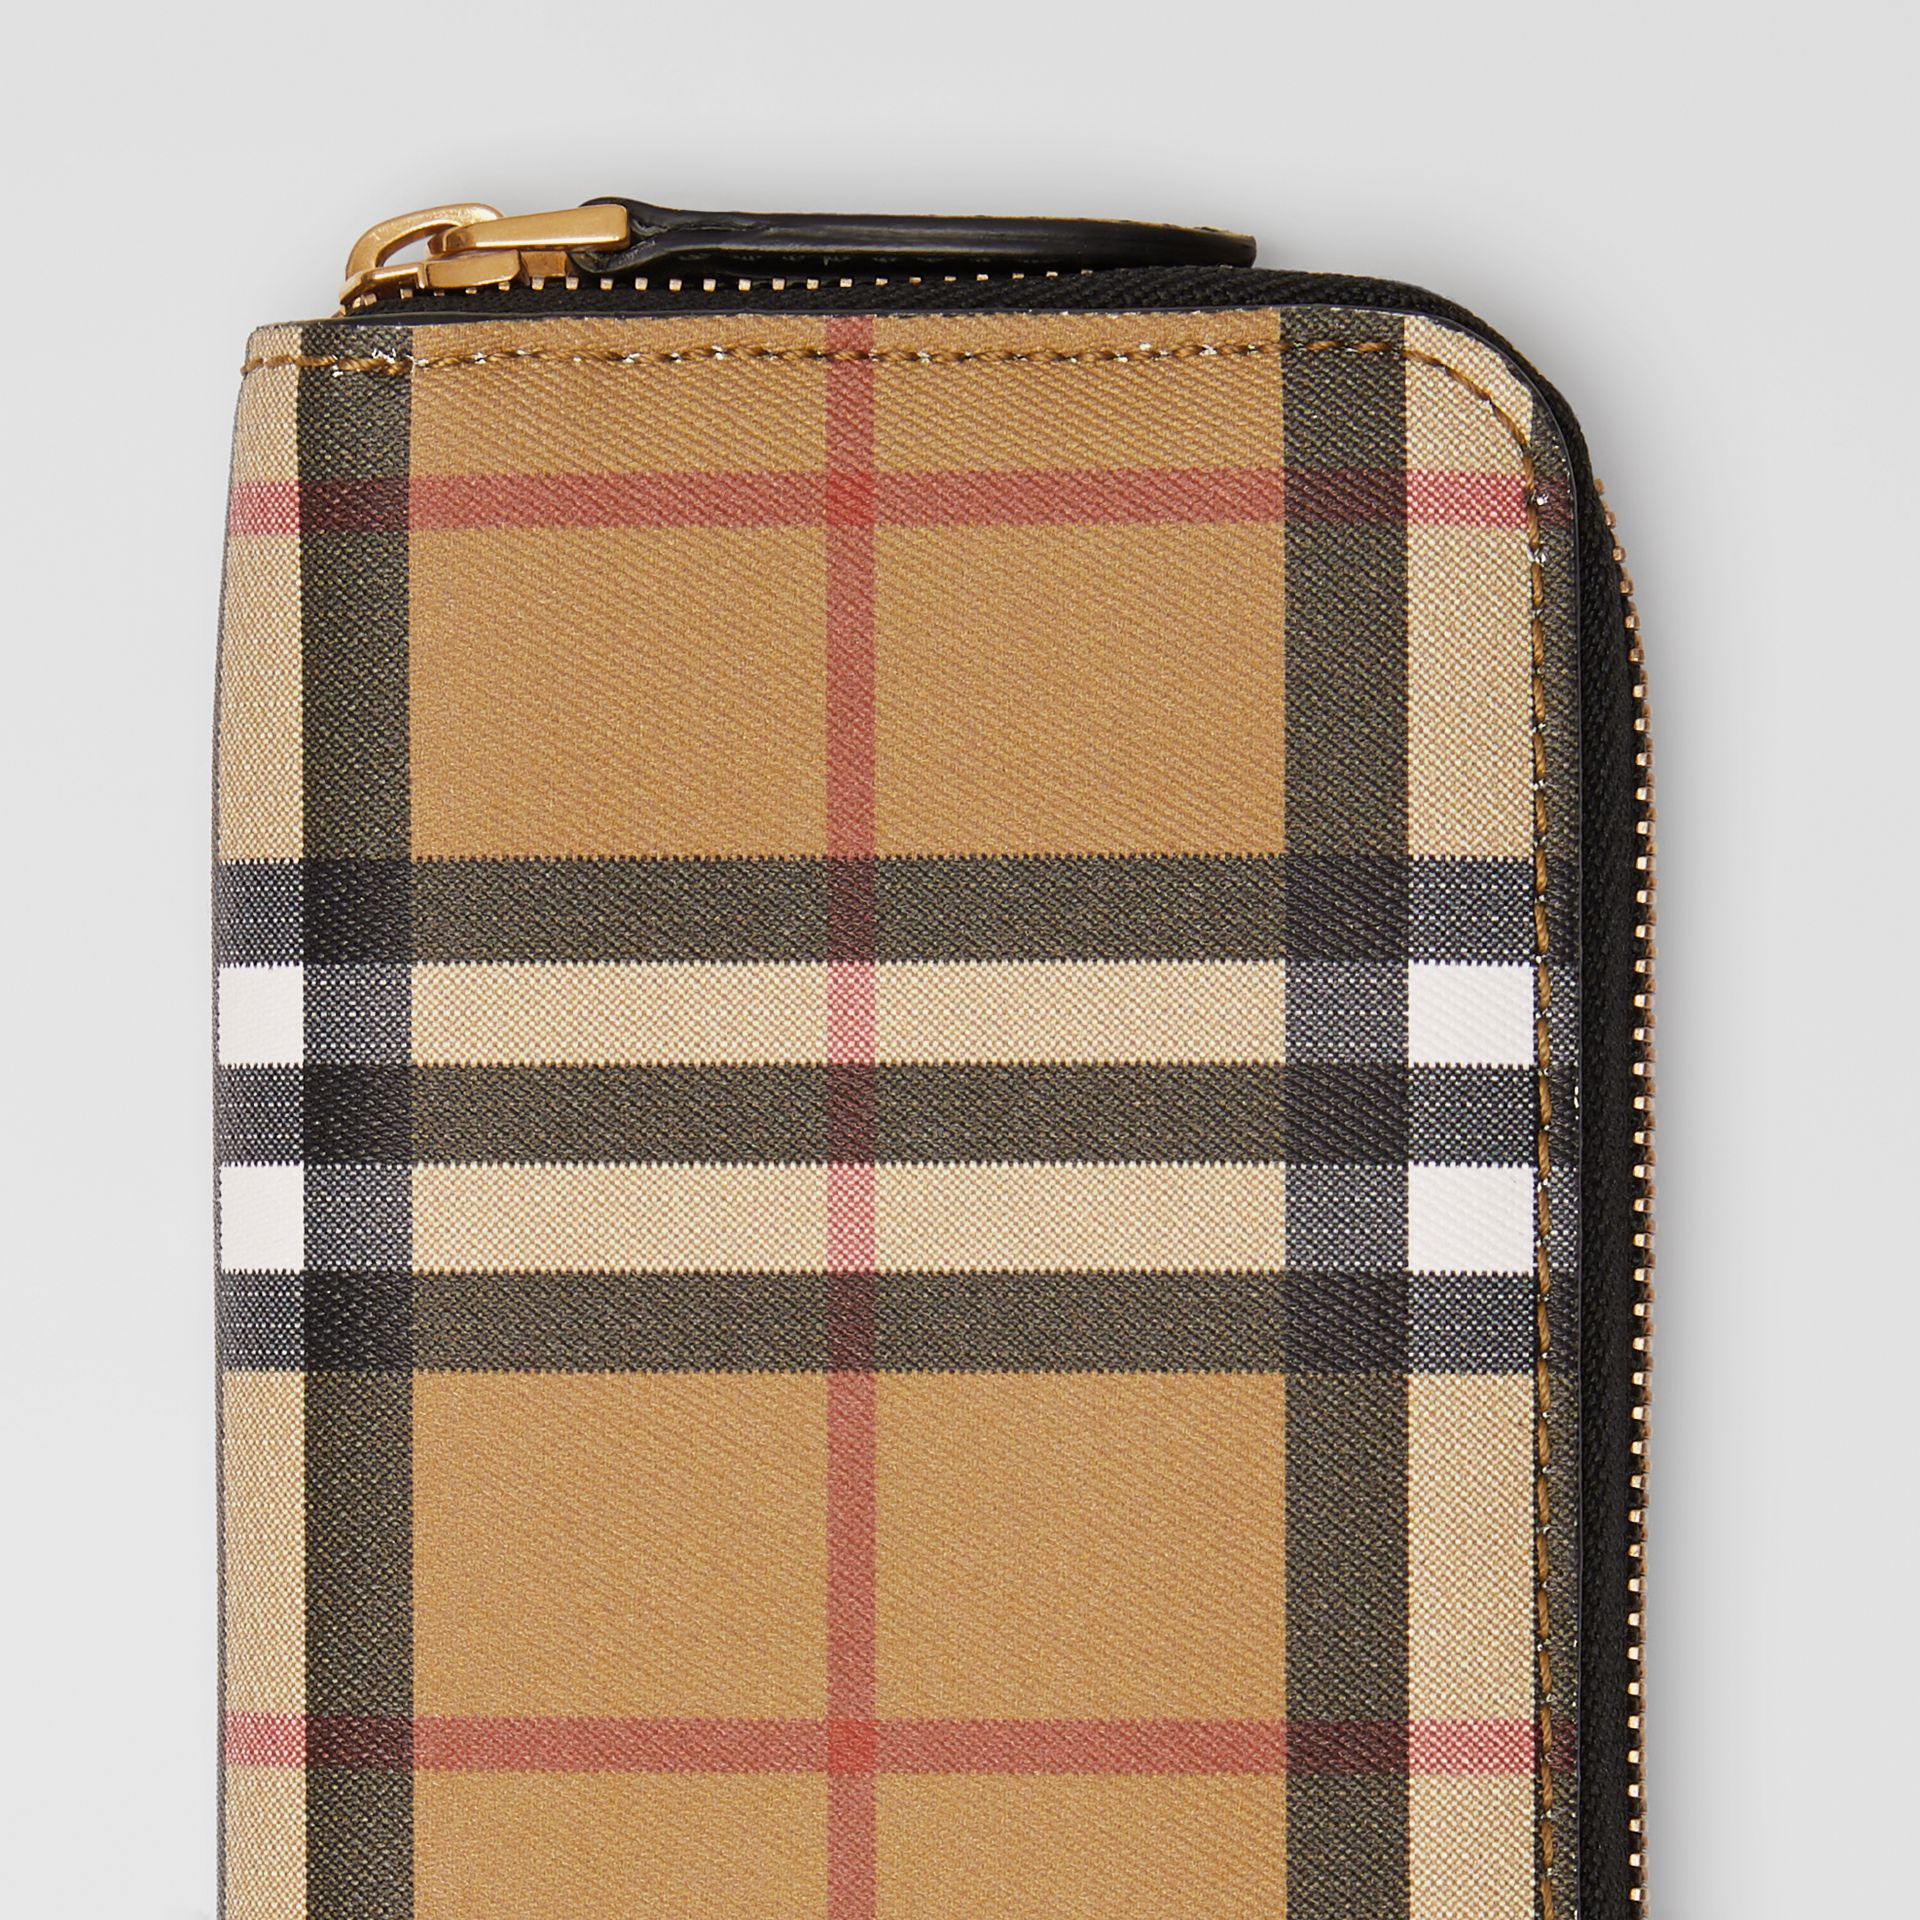 Vintage Check and Leather Ziparound Wallet in Black - Women | Burberry Canada - gallery image 1